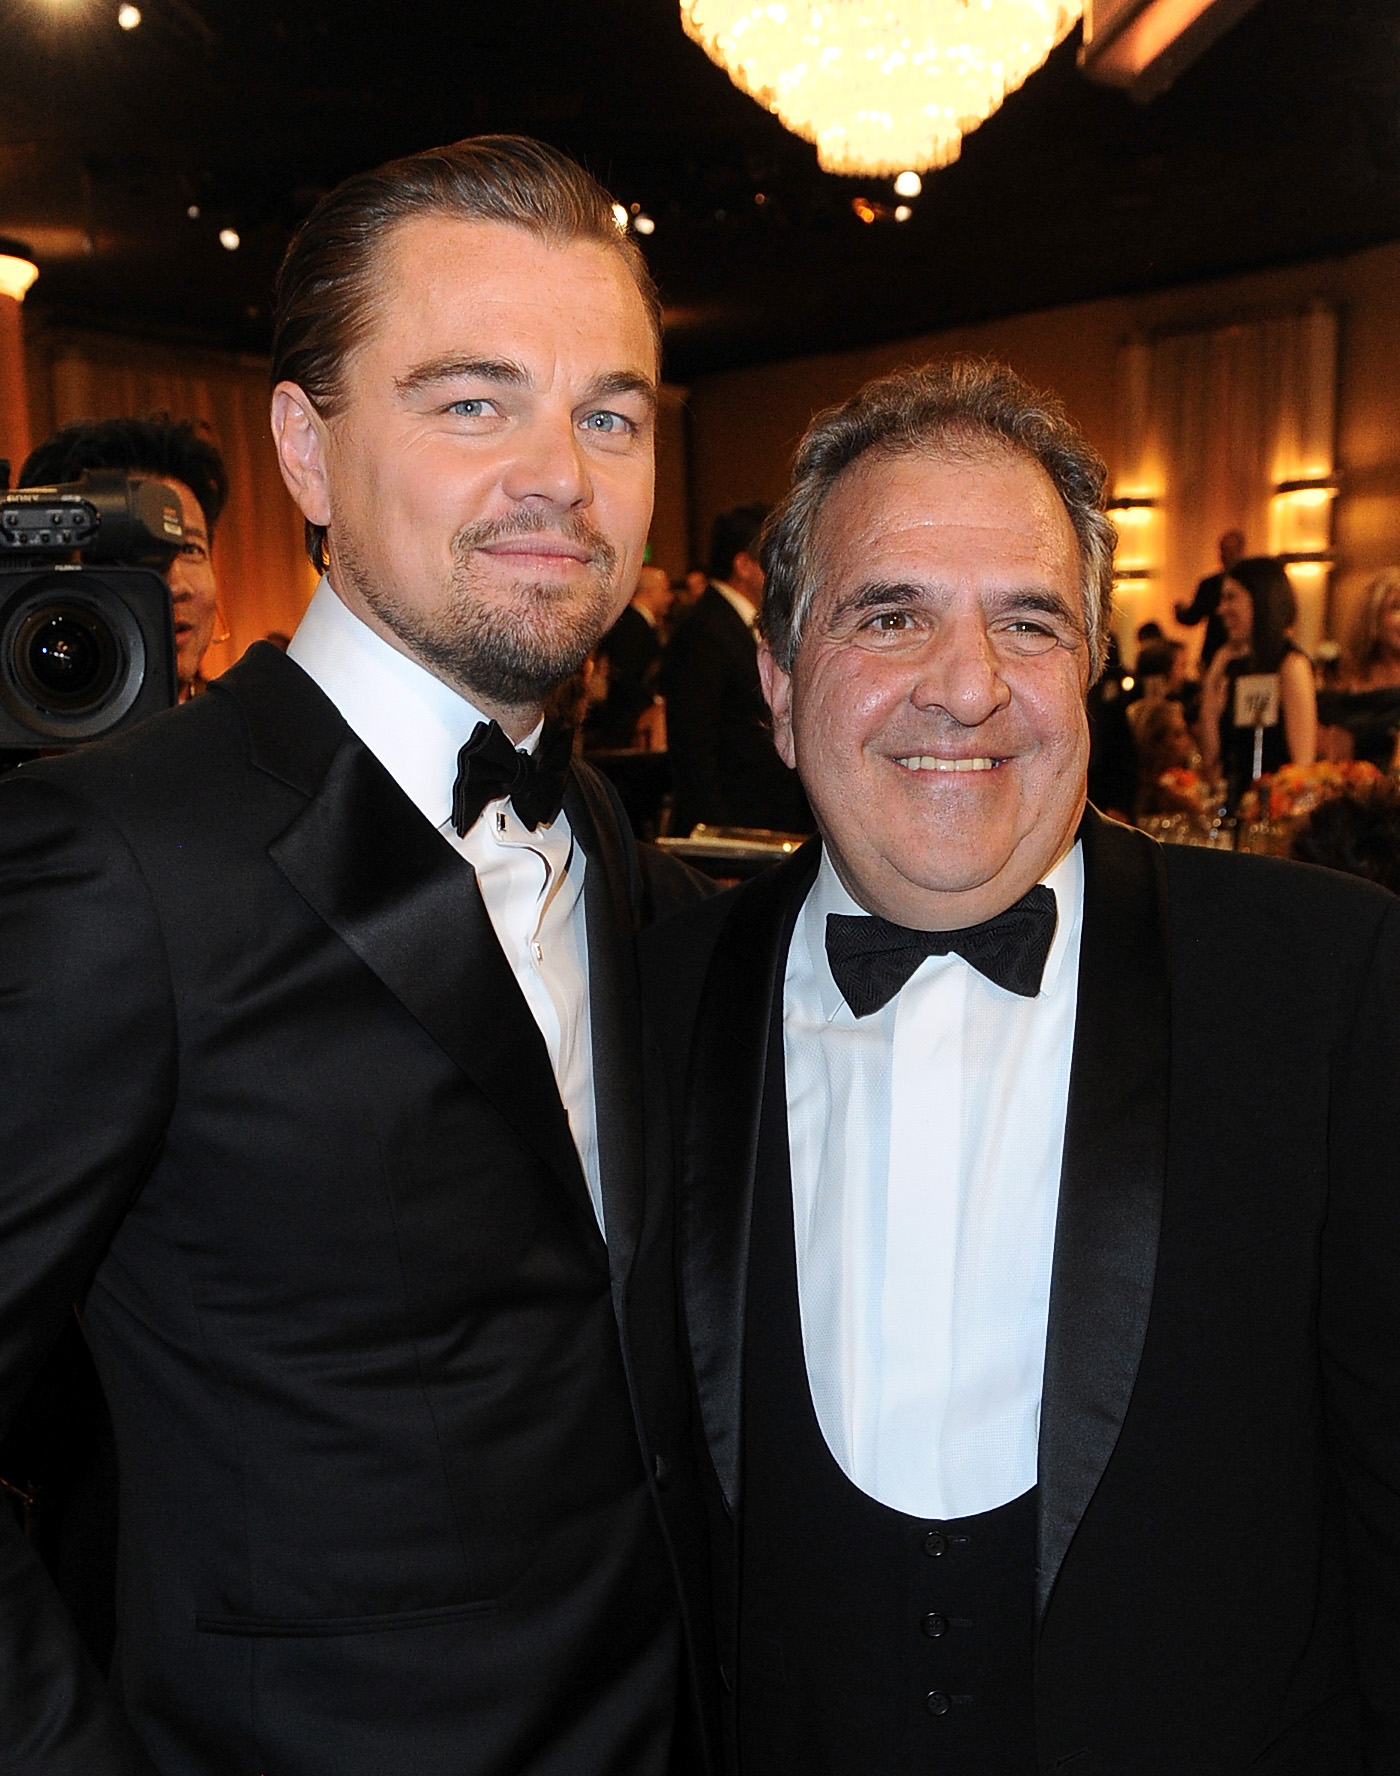 He and Fox executive Jim Gianopulos smiled in their tuxes.